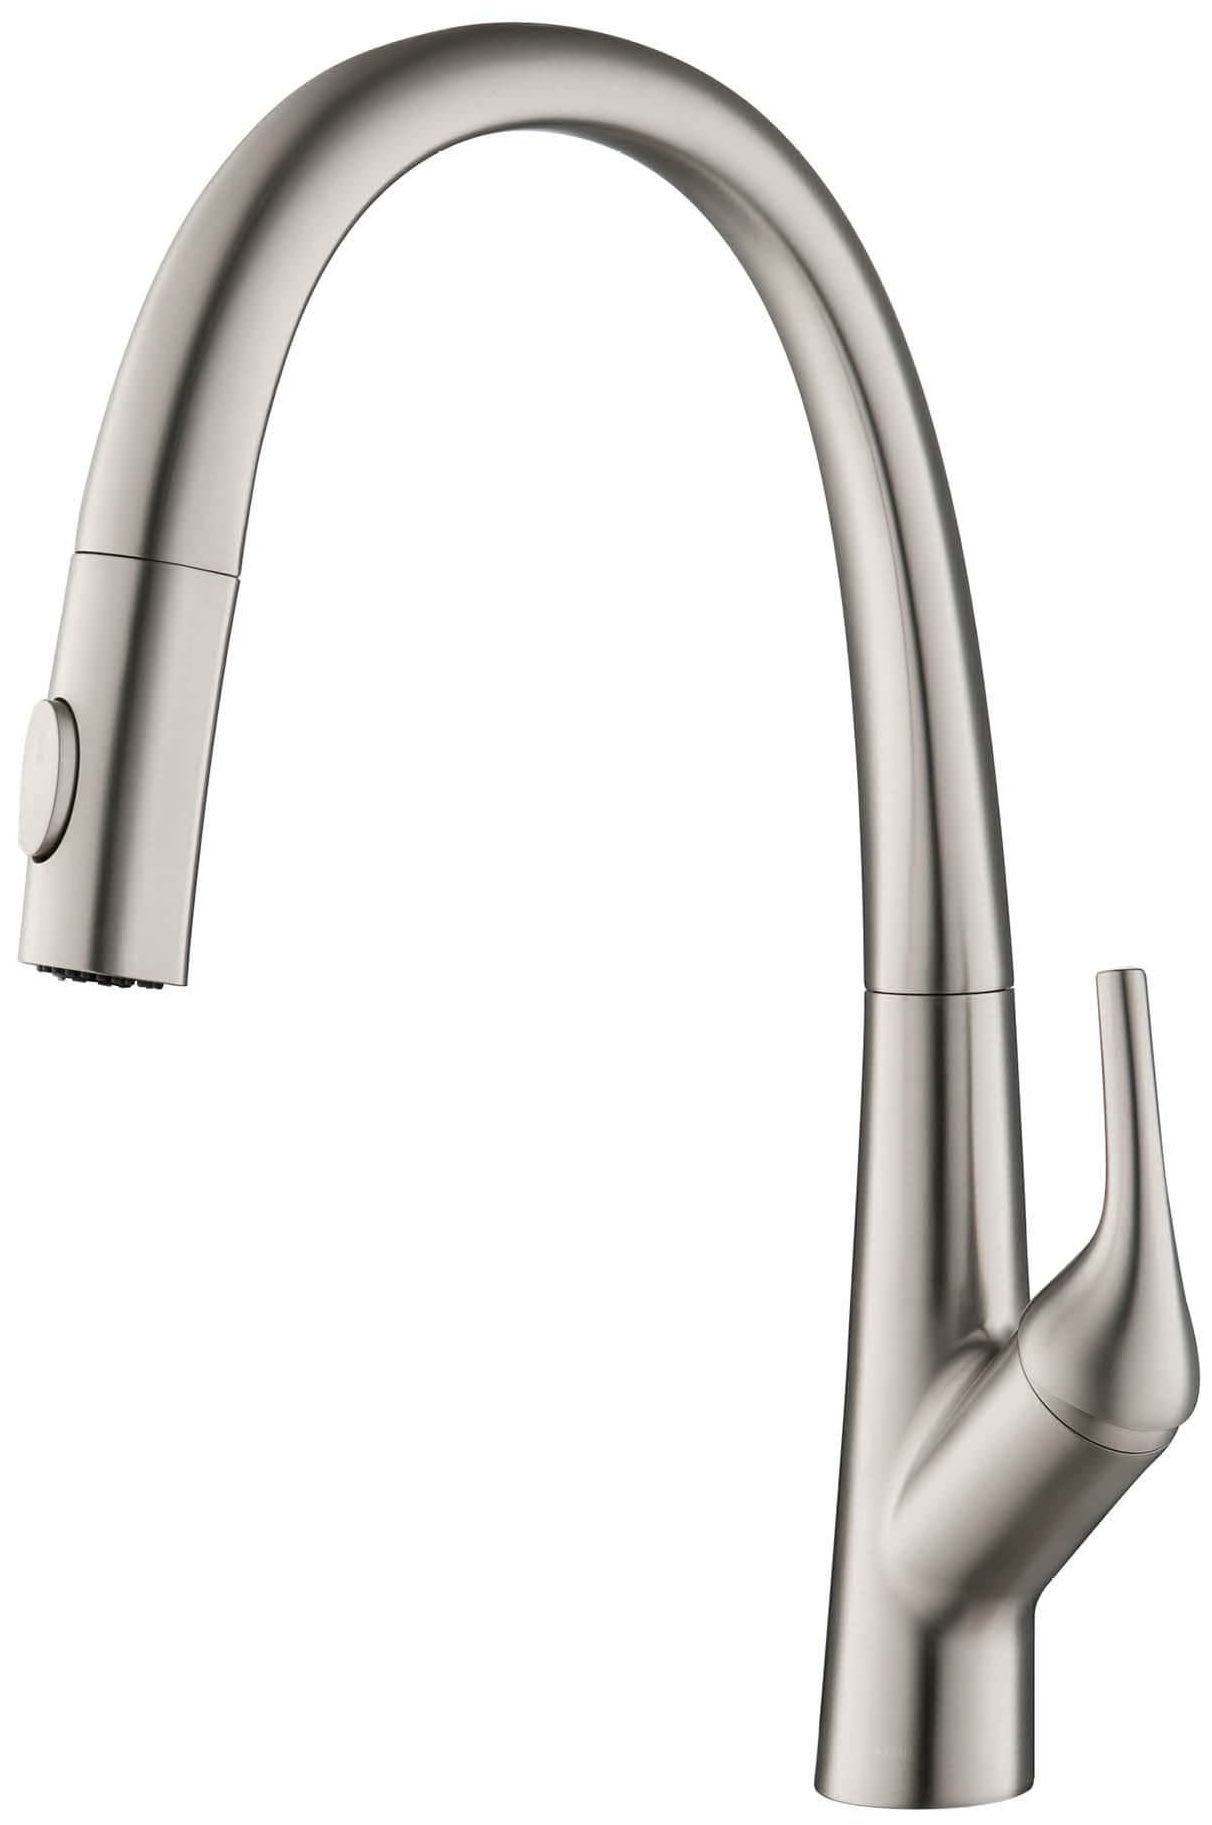 Kraus Kpf 2523sfs Spot Free Stainless Steel Arqo 1 8 Gpm Single Hole Pull Down Kitchen Faucet Faucet Com